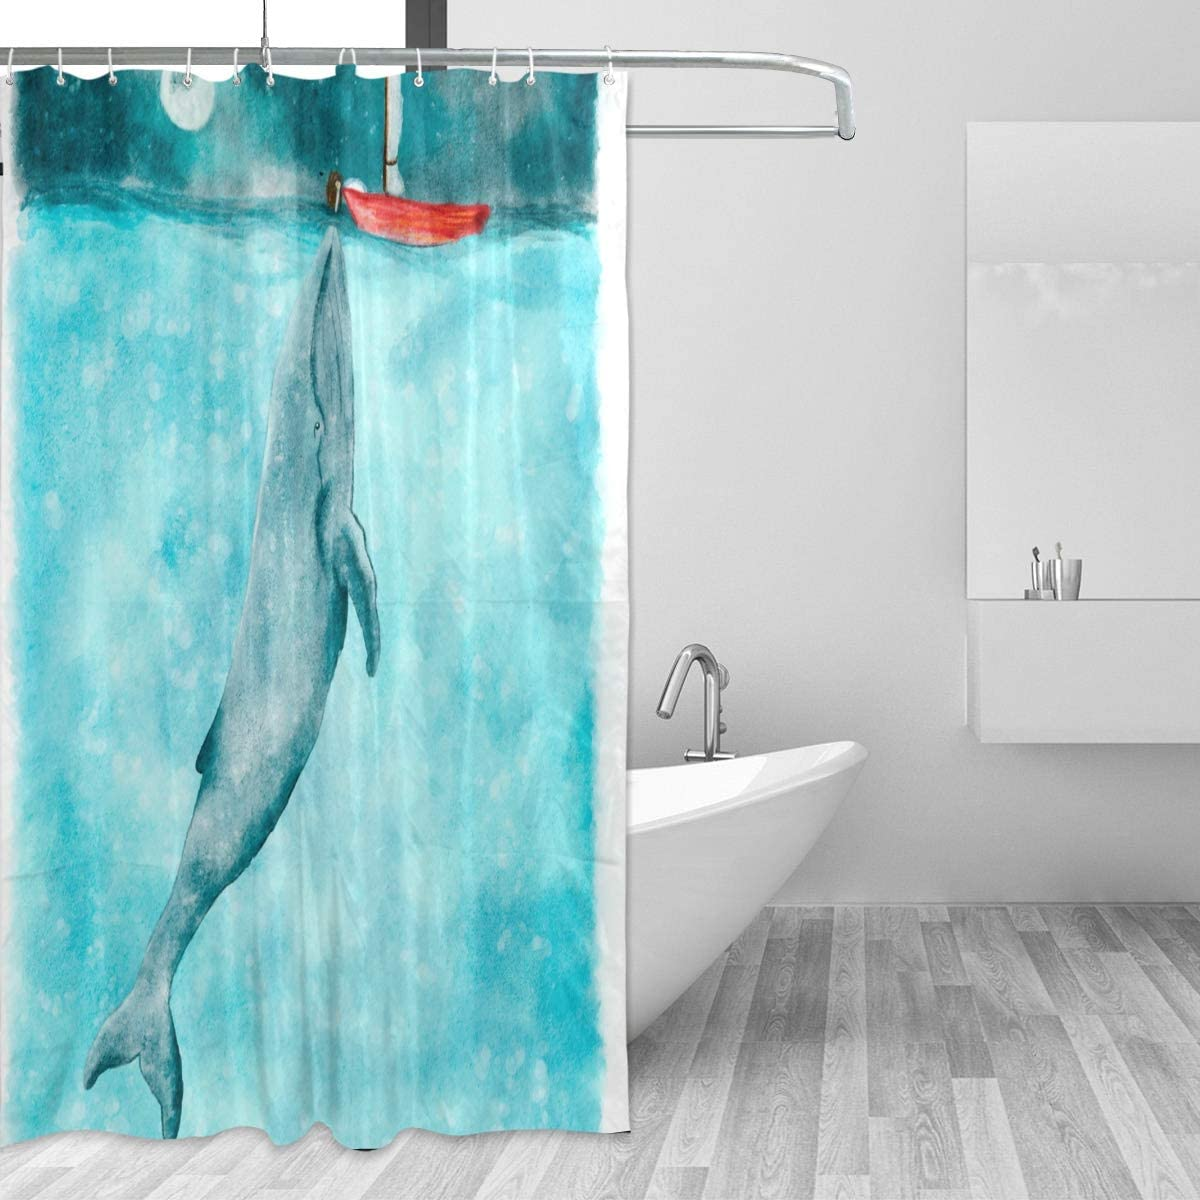 ISAOA Brown Army Camouflage Shower Curtain Waterproof Mildew Resistant Anti-Bacterial Personalized Design Polyester Fabric Curtain for Bathroom,180x180cm with 12 hooks